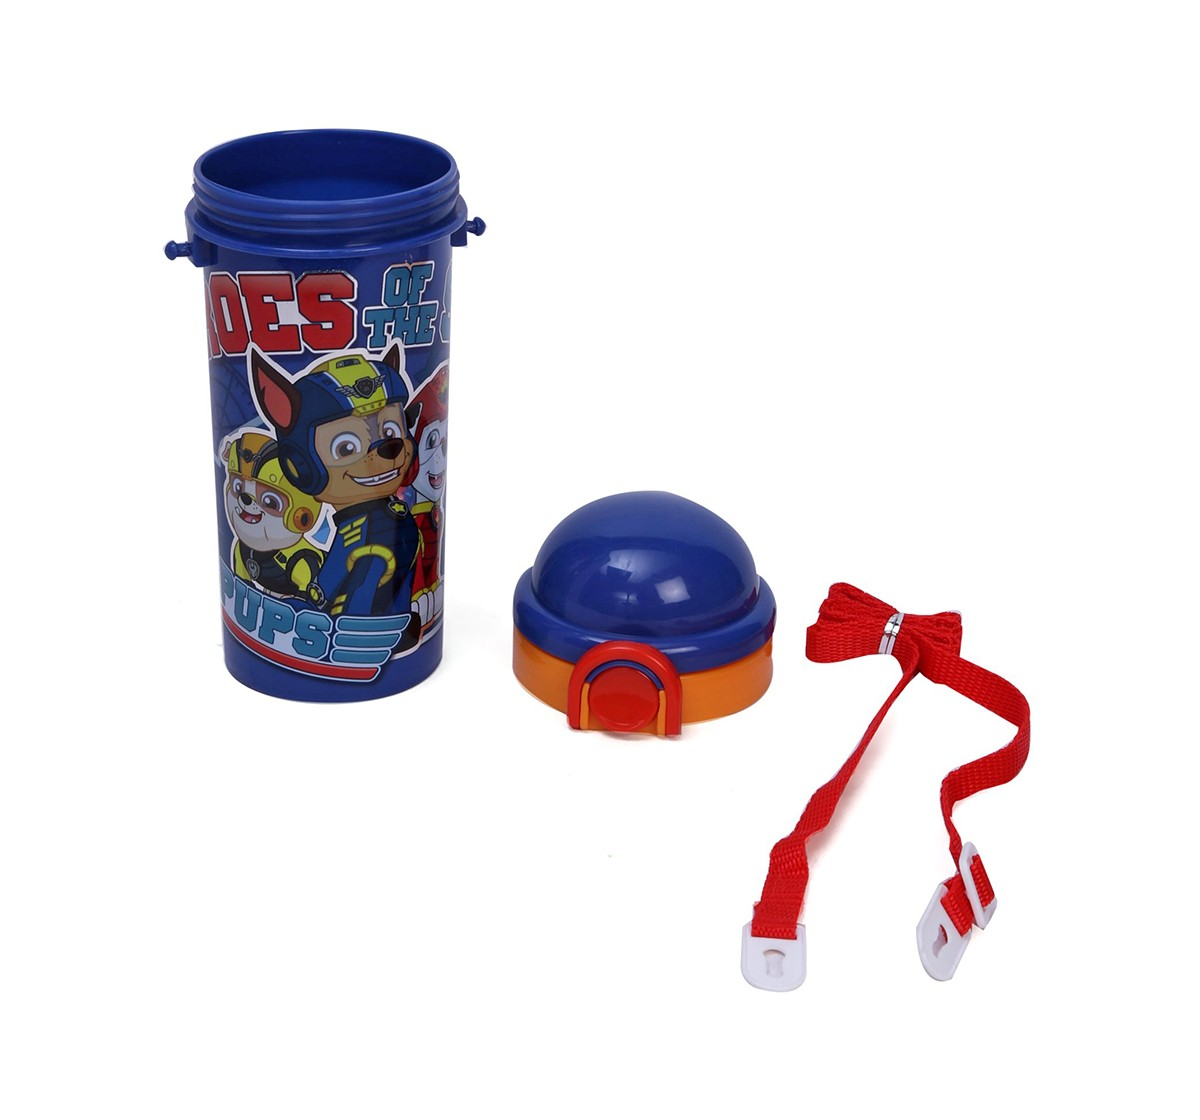 Paw Patrol Heroes of The Sky Water Bottle 450 ml for age 3Y+  Quirky Soft Toys for Kids age 3Y+ - 18.2 Cm